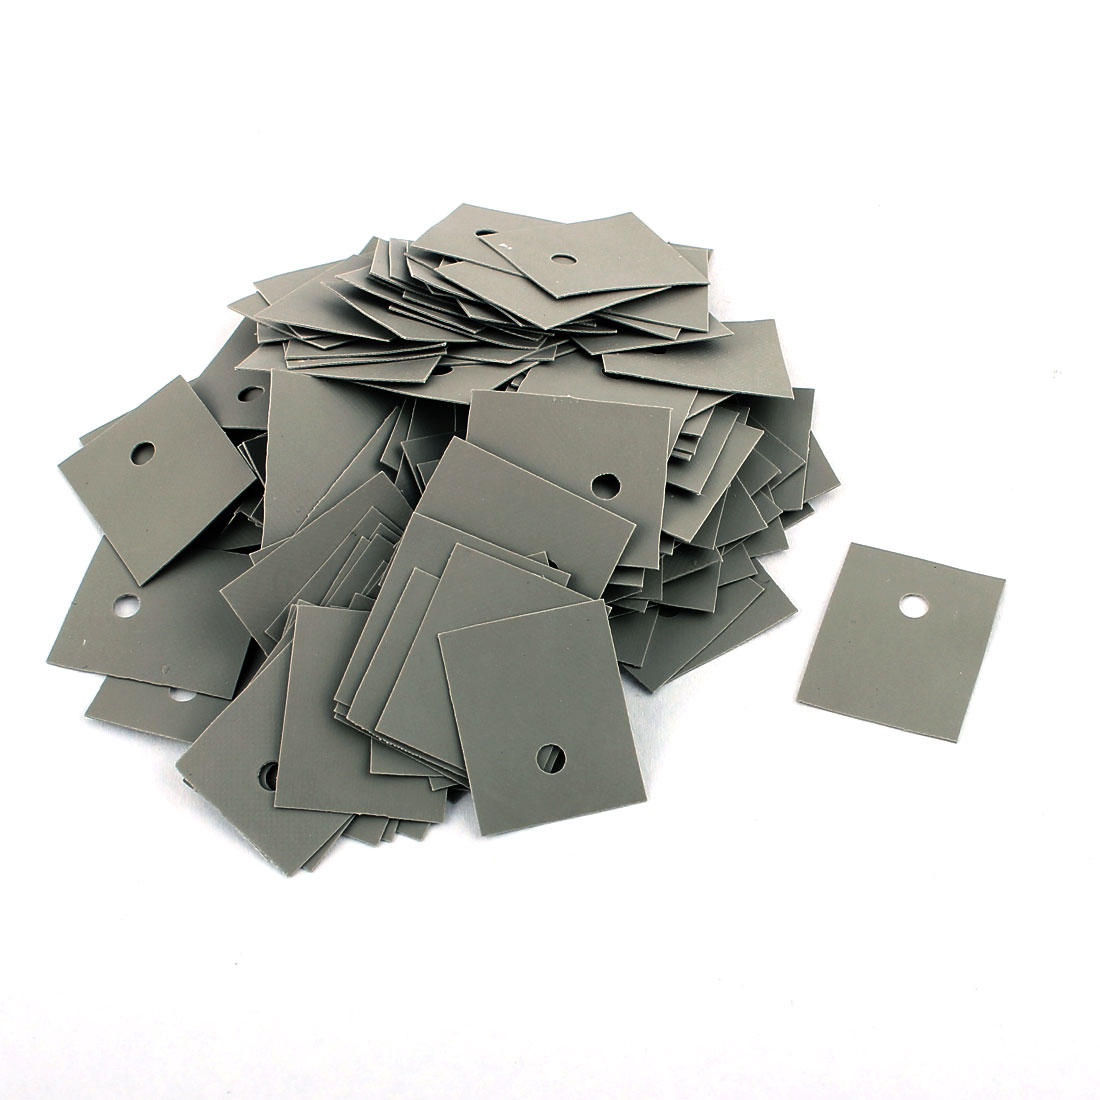 150 Pcs 22mm x 18mm x 0.2mm Silicone Thermal Insulation Pad Sheet TO-3P1